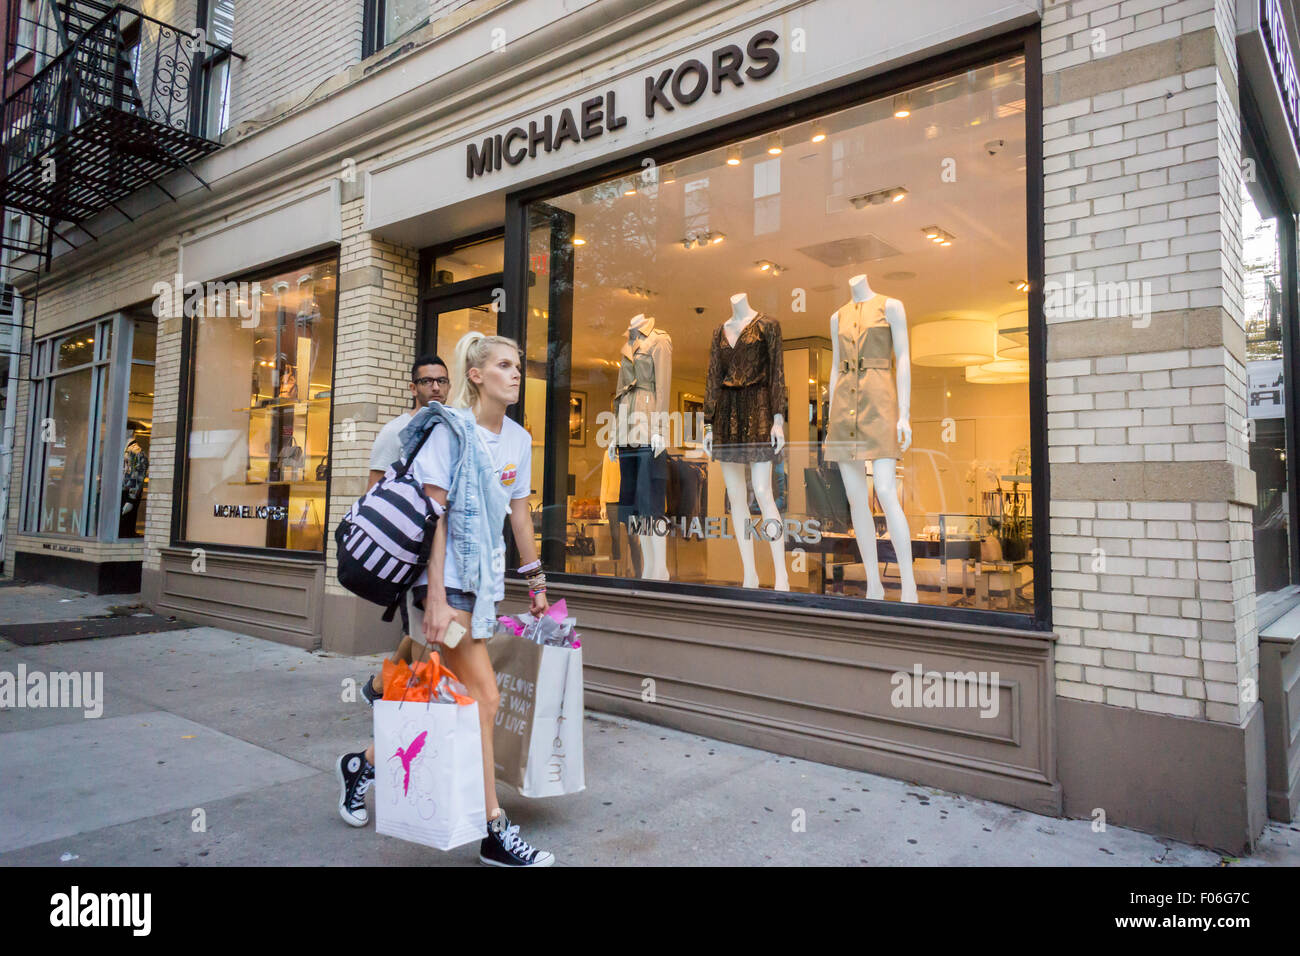 Michael Kors New York